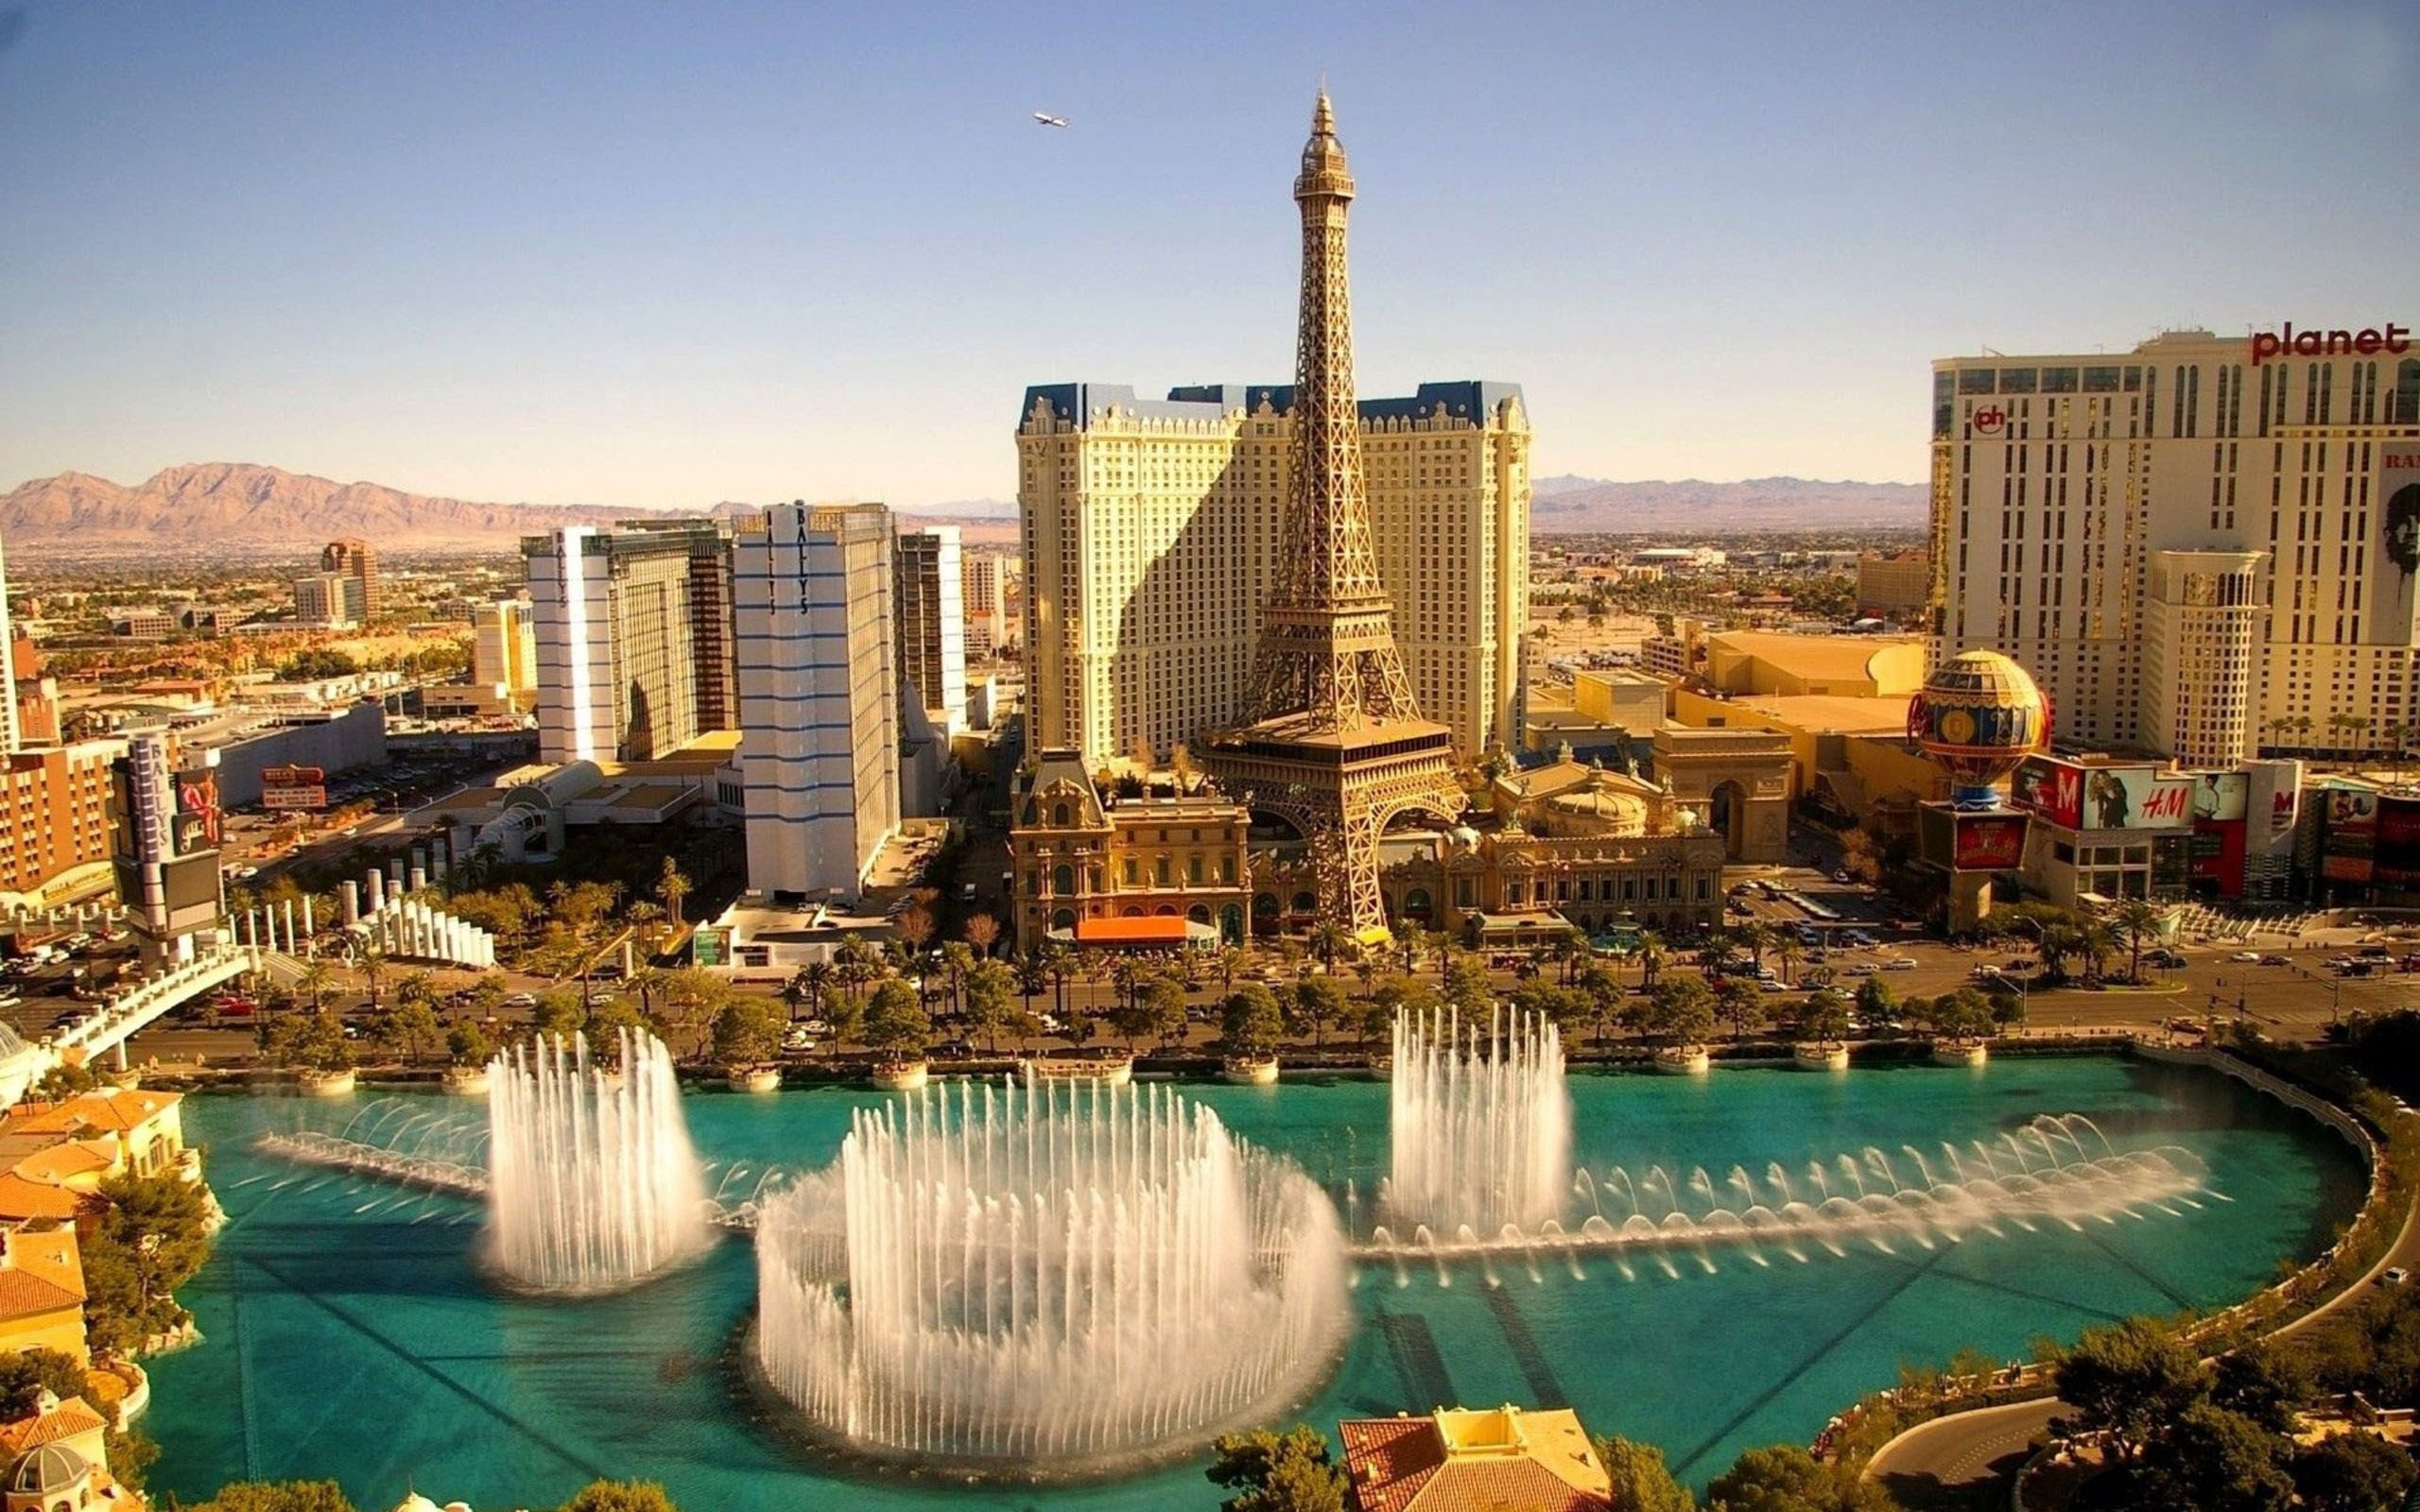 Mesquite, Nevada attracts families who like a small-town feel with big city convenience and retirees for the low cost of living with a pleasant lifestyle.